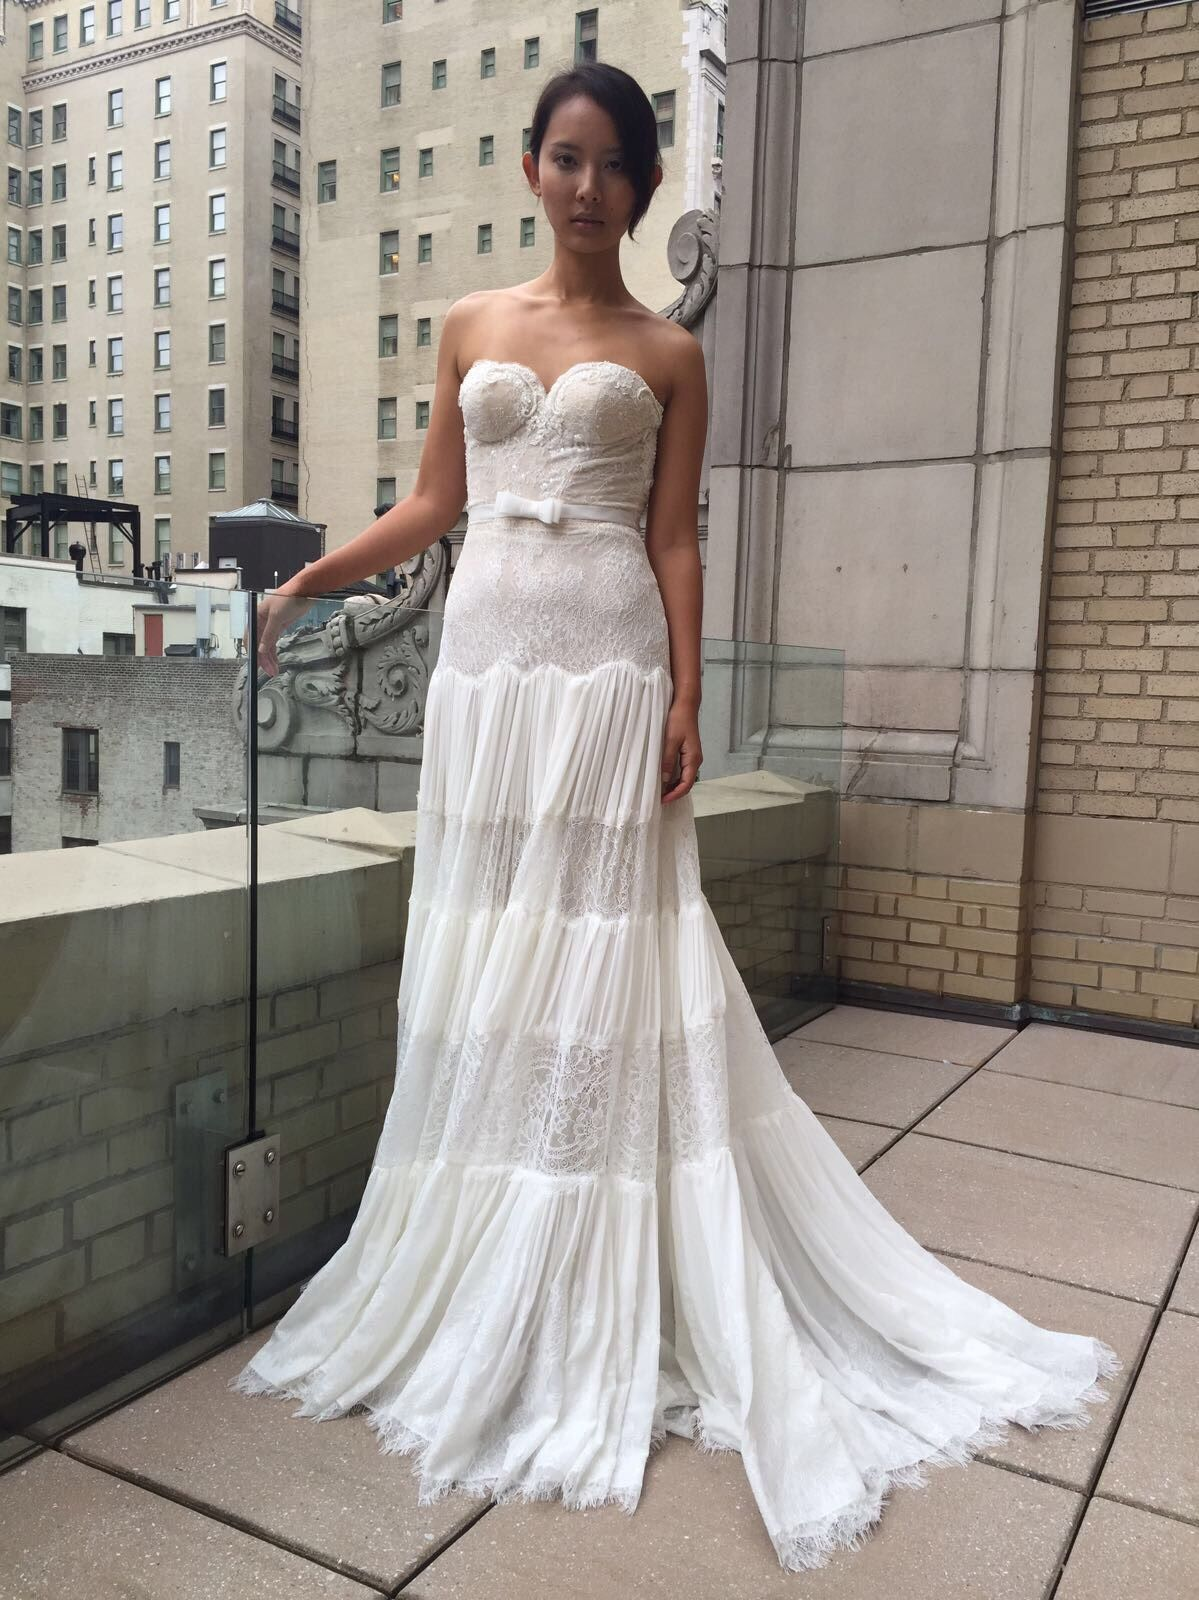 Boho hippie wedding dress  Lela Rose Sleeveless Bohemian Wedding Dress  sleeveless